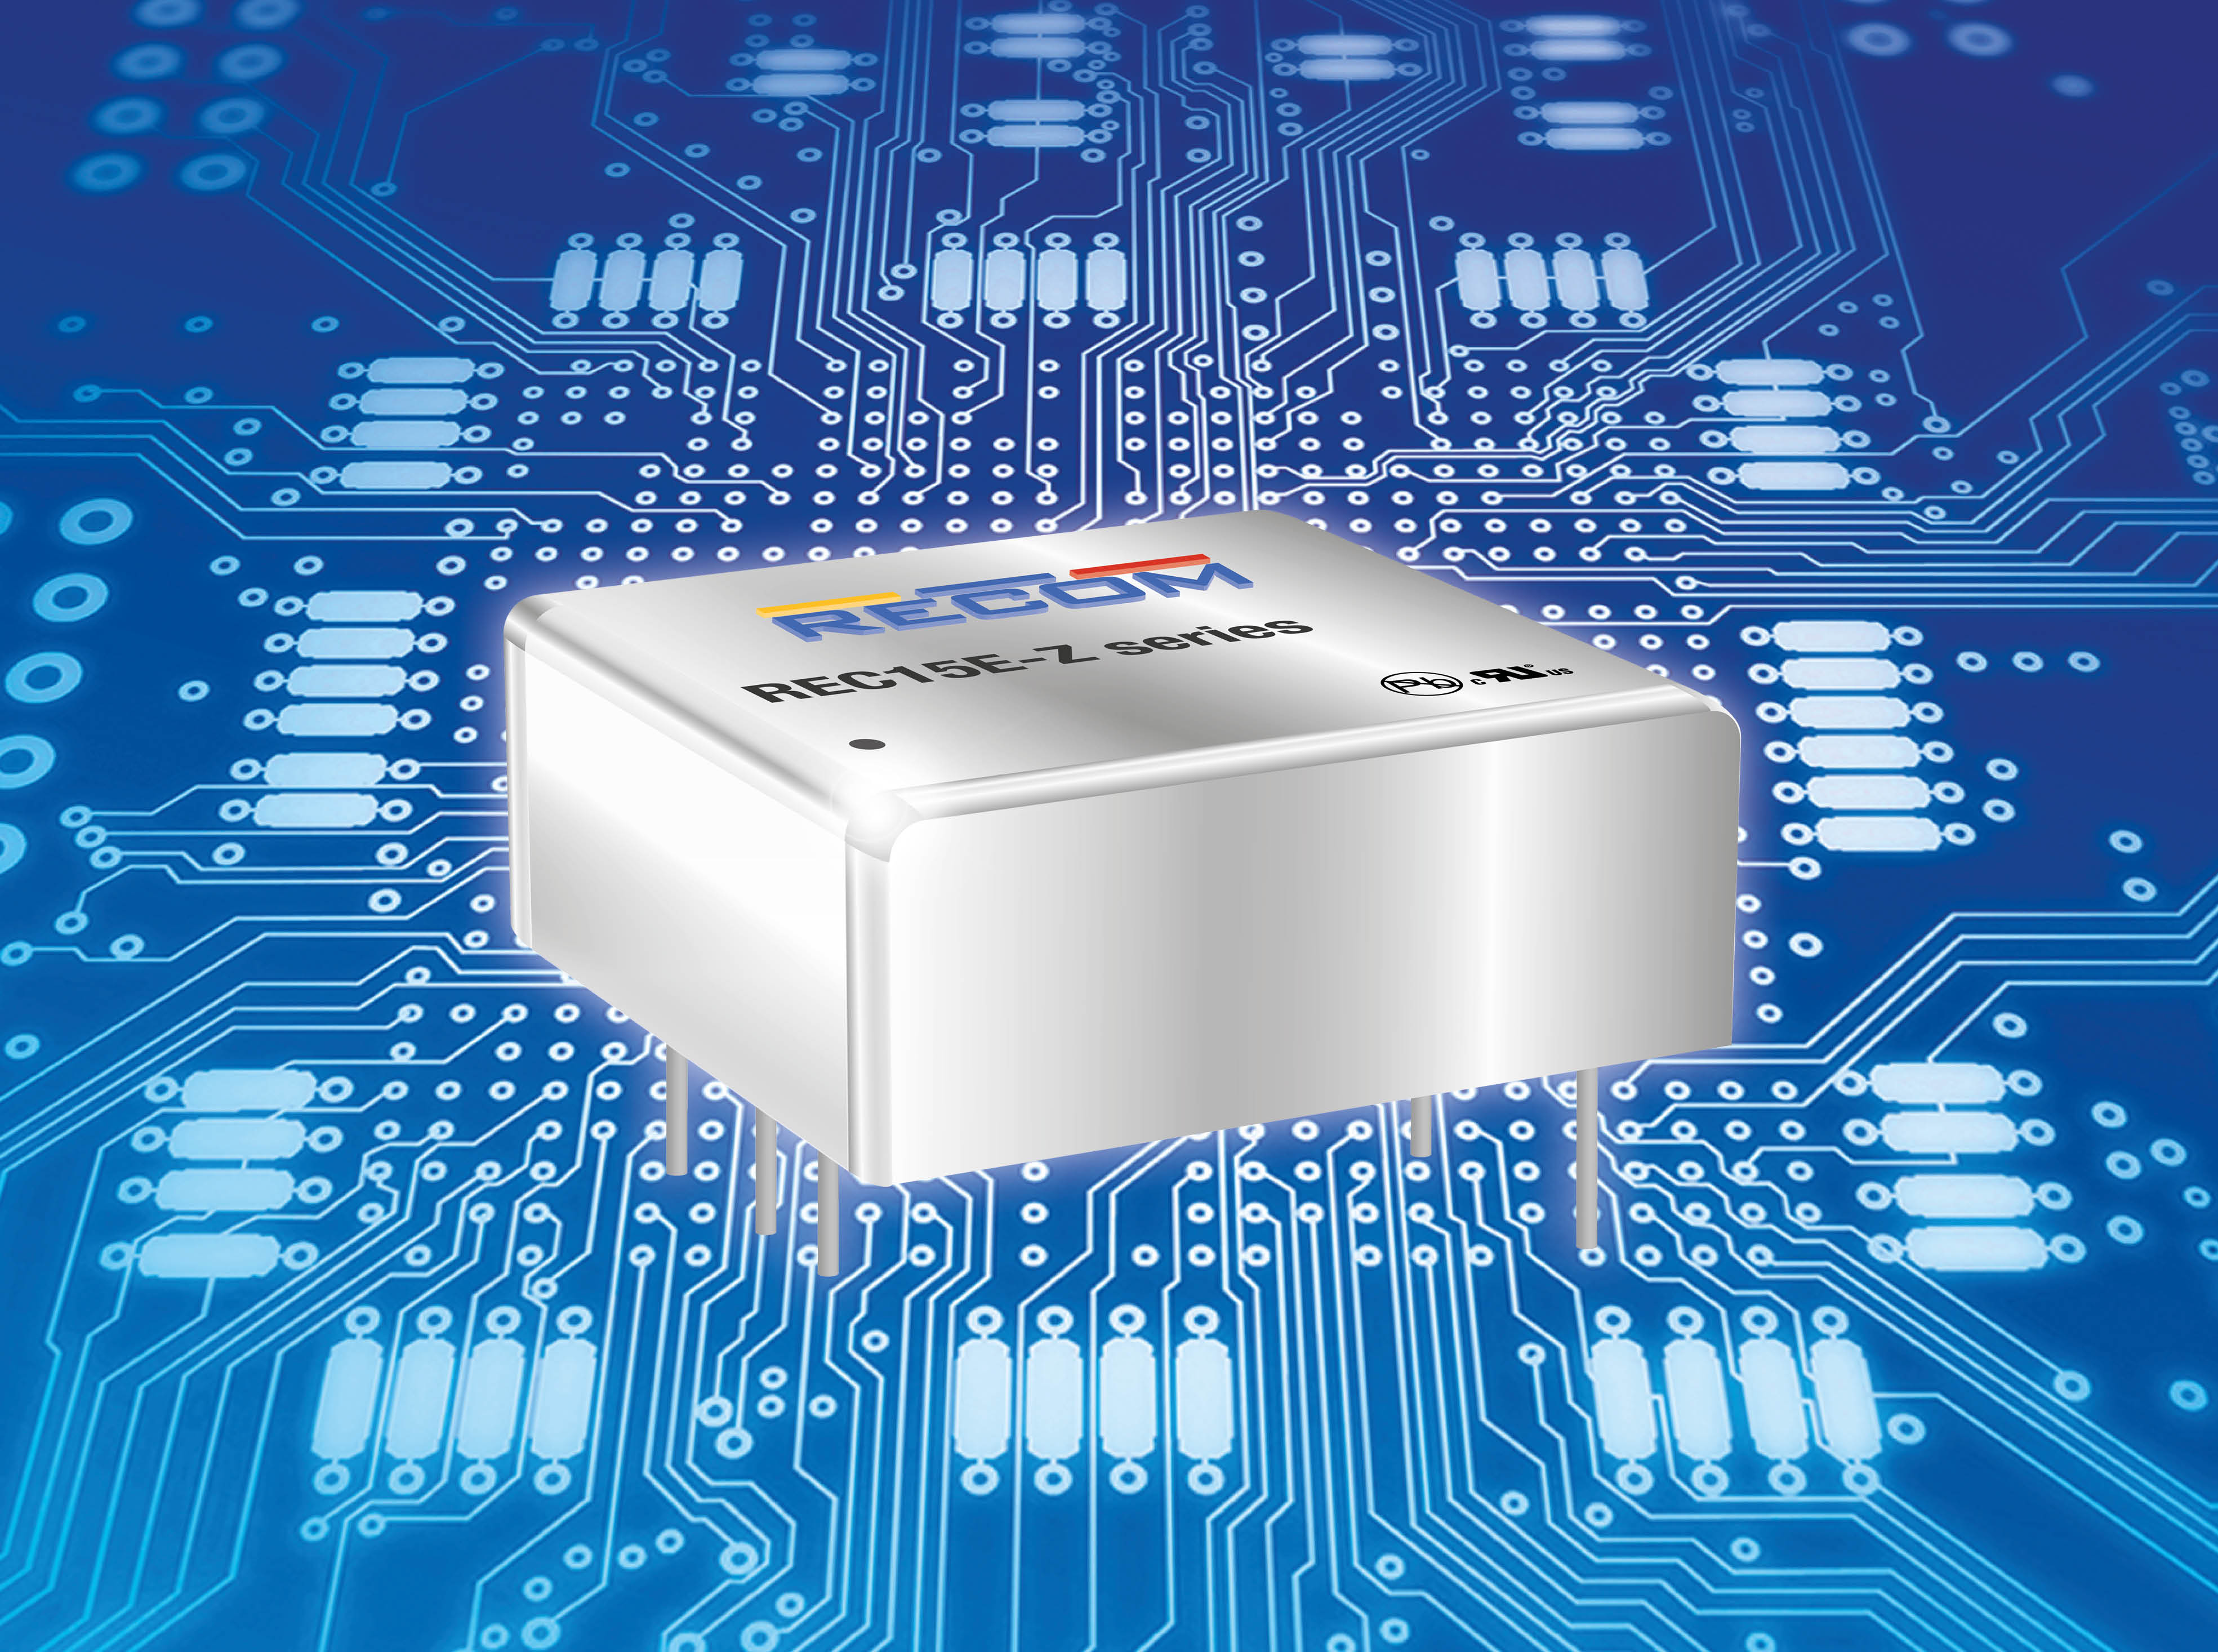 Compact DC/DC Converters from RECOM Now at Rutronik, Inc.